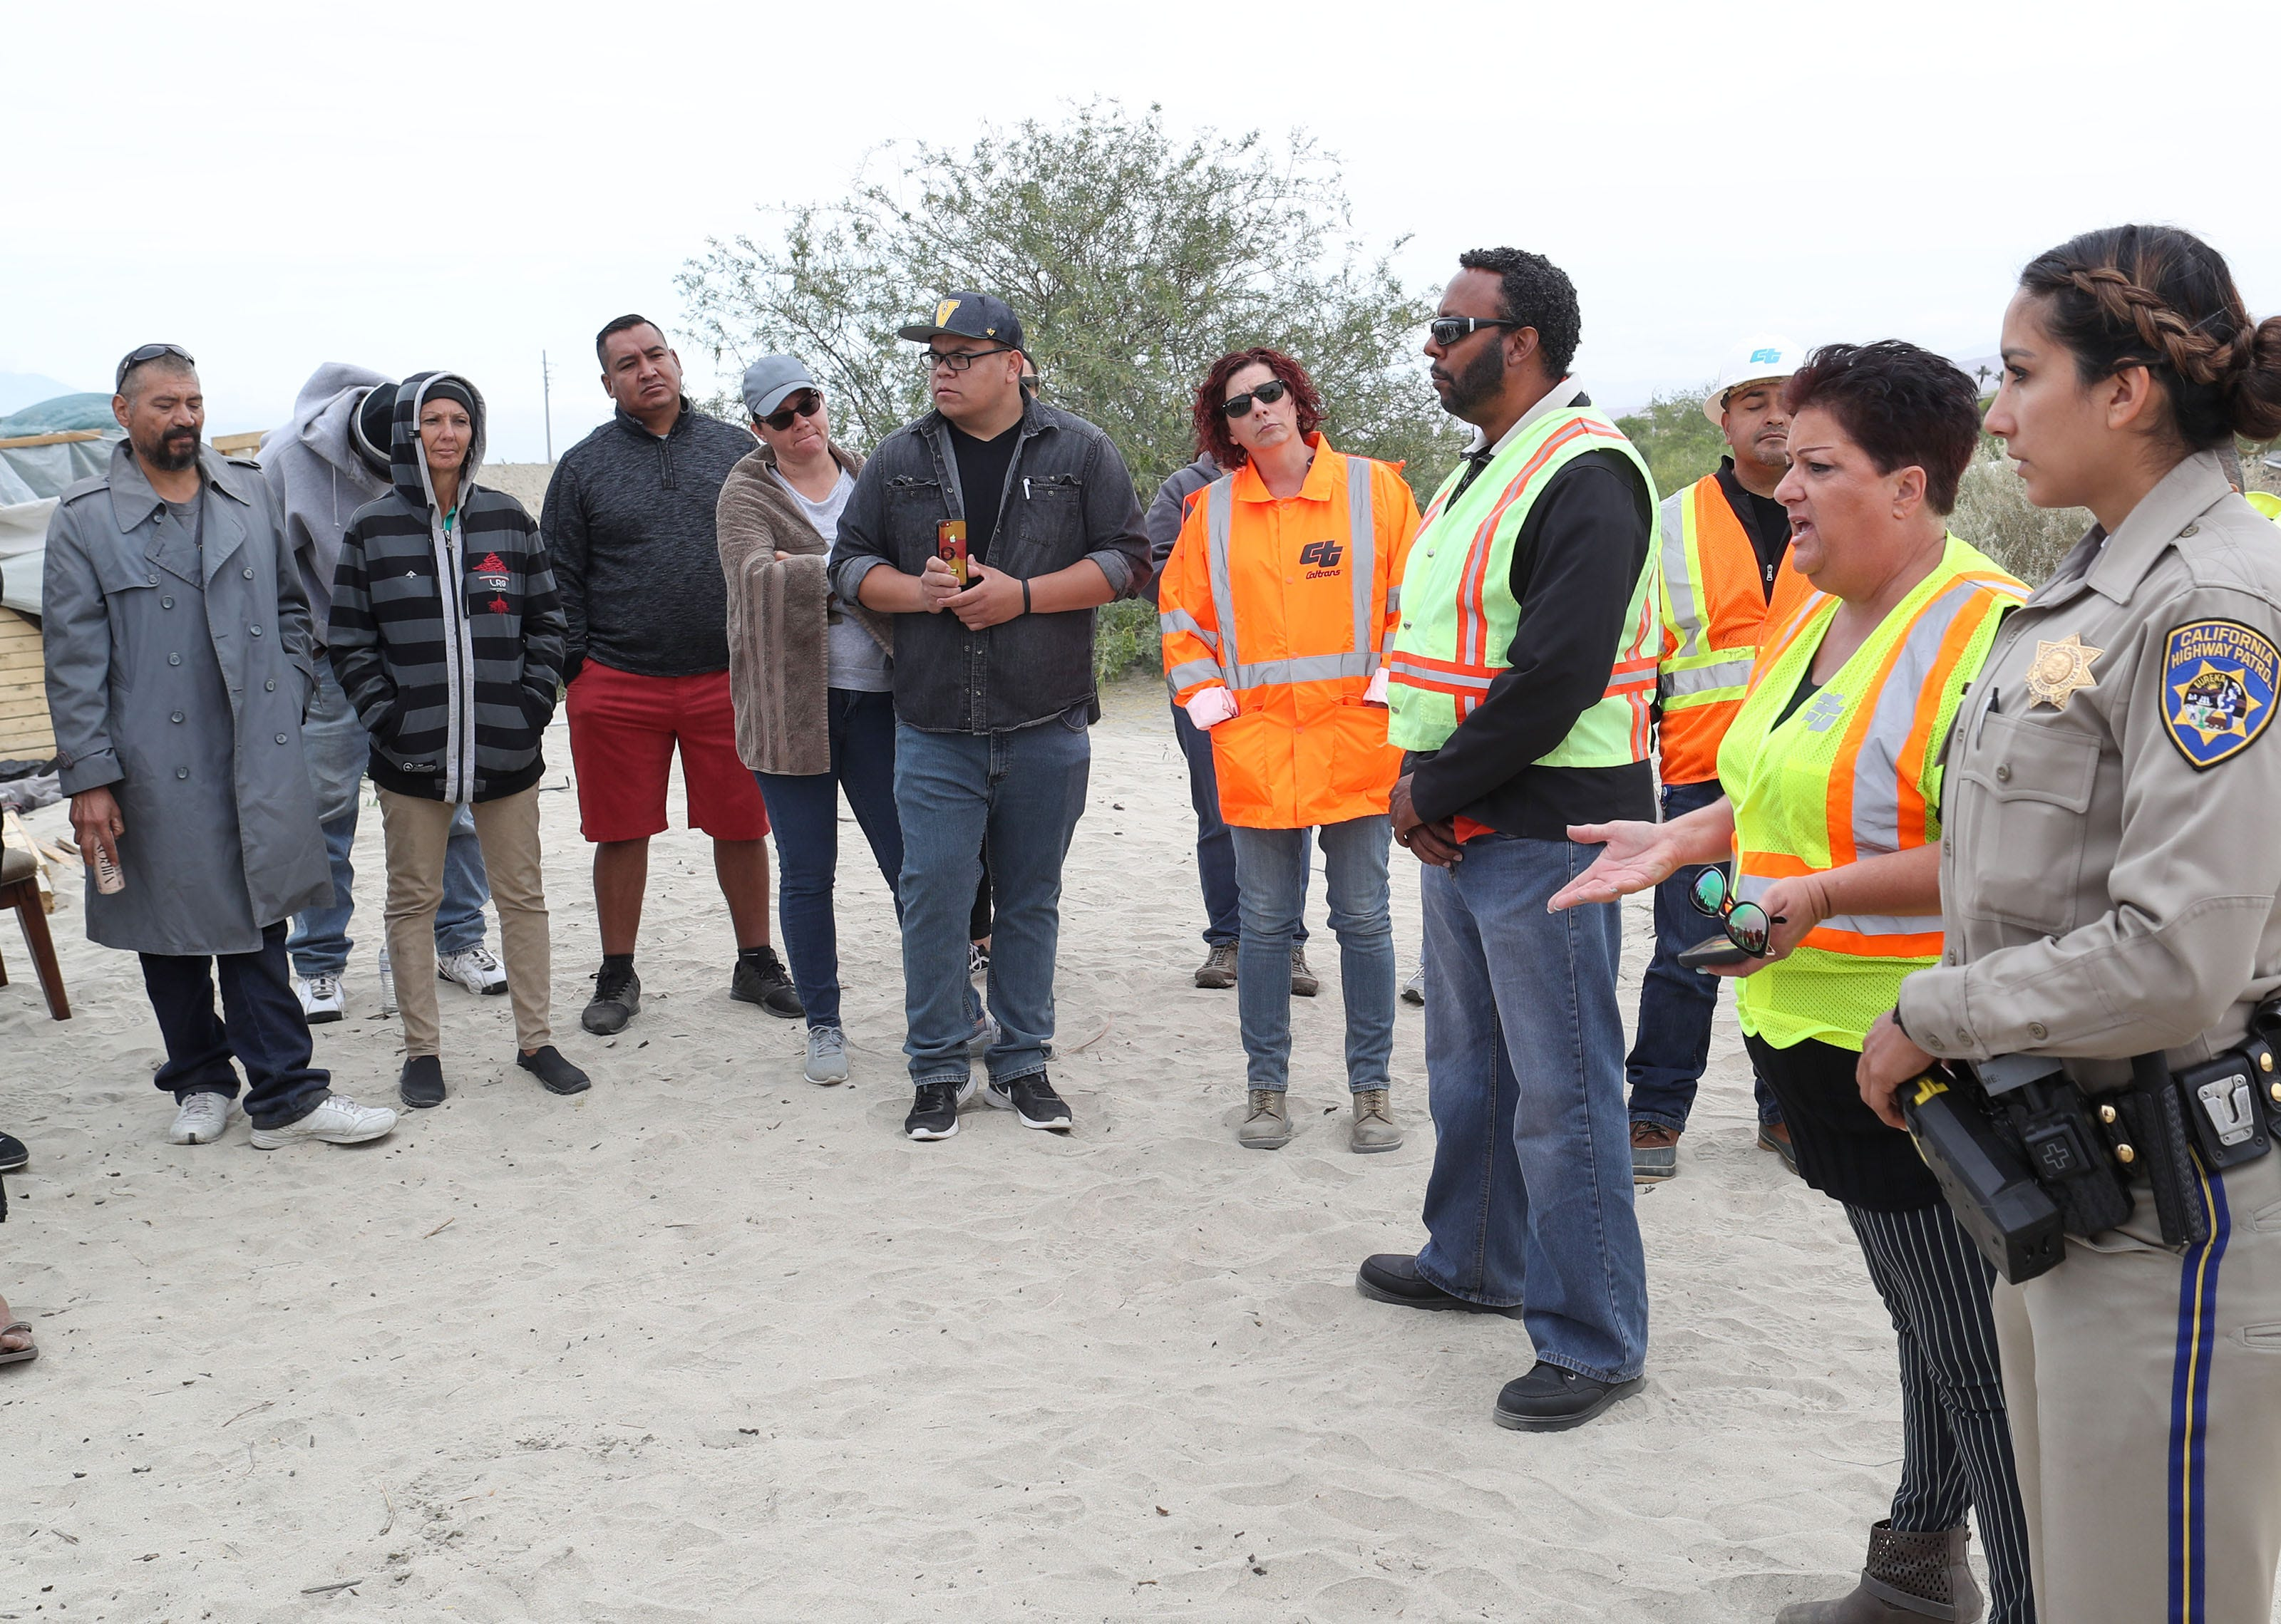 People living at the Coachella encampment are told by Caltrans they will have to leave on May 1, 2018.